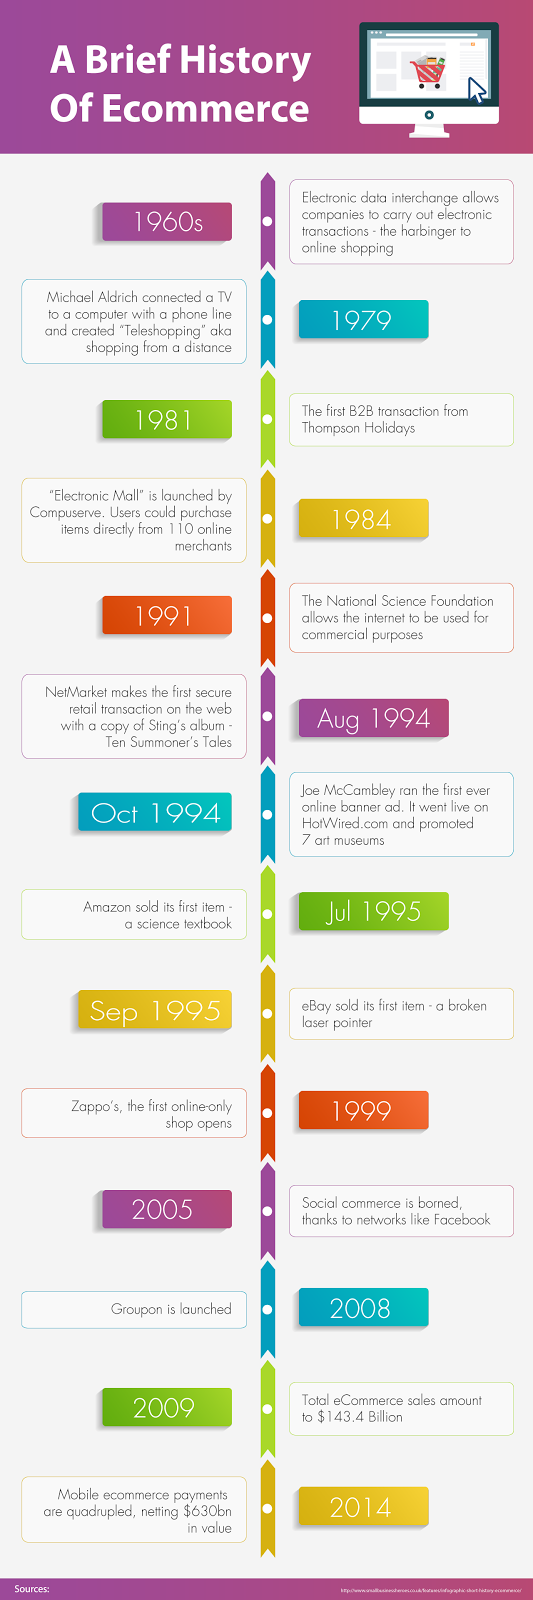 A Brief History of Ecommerce